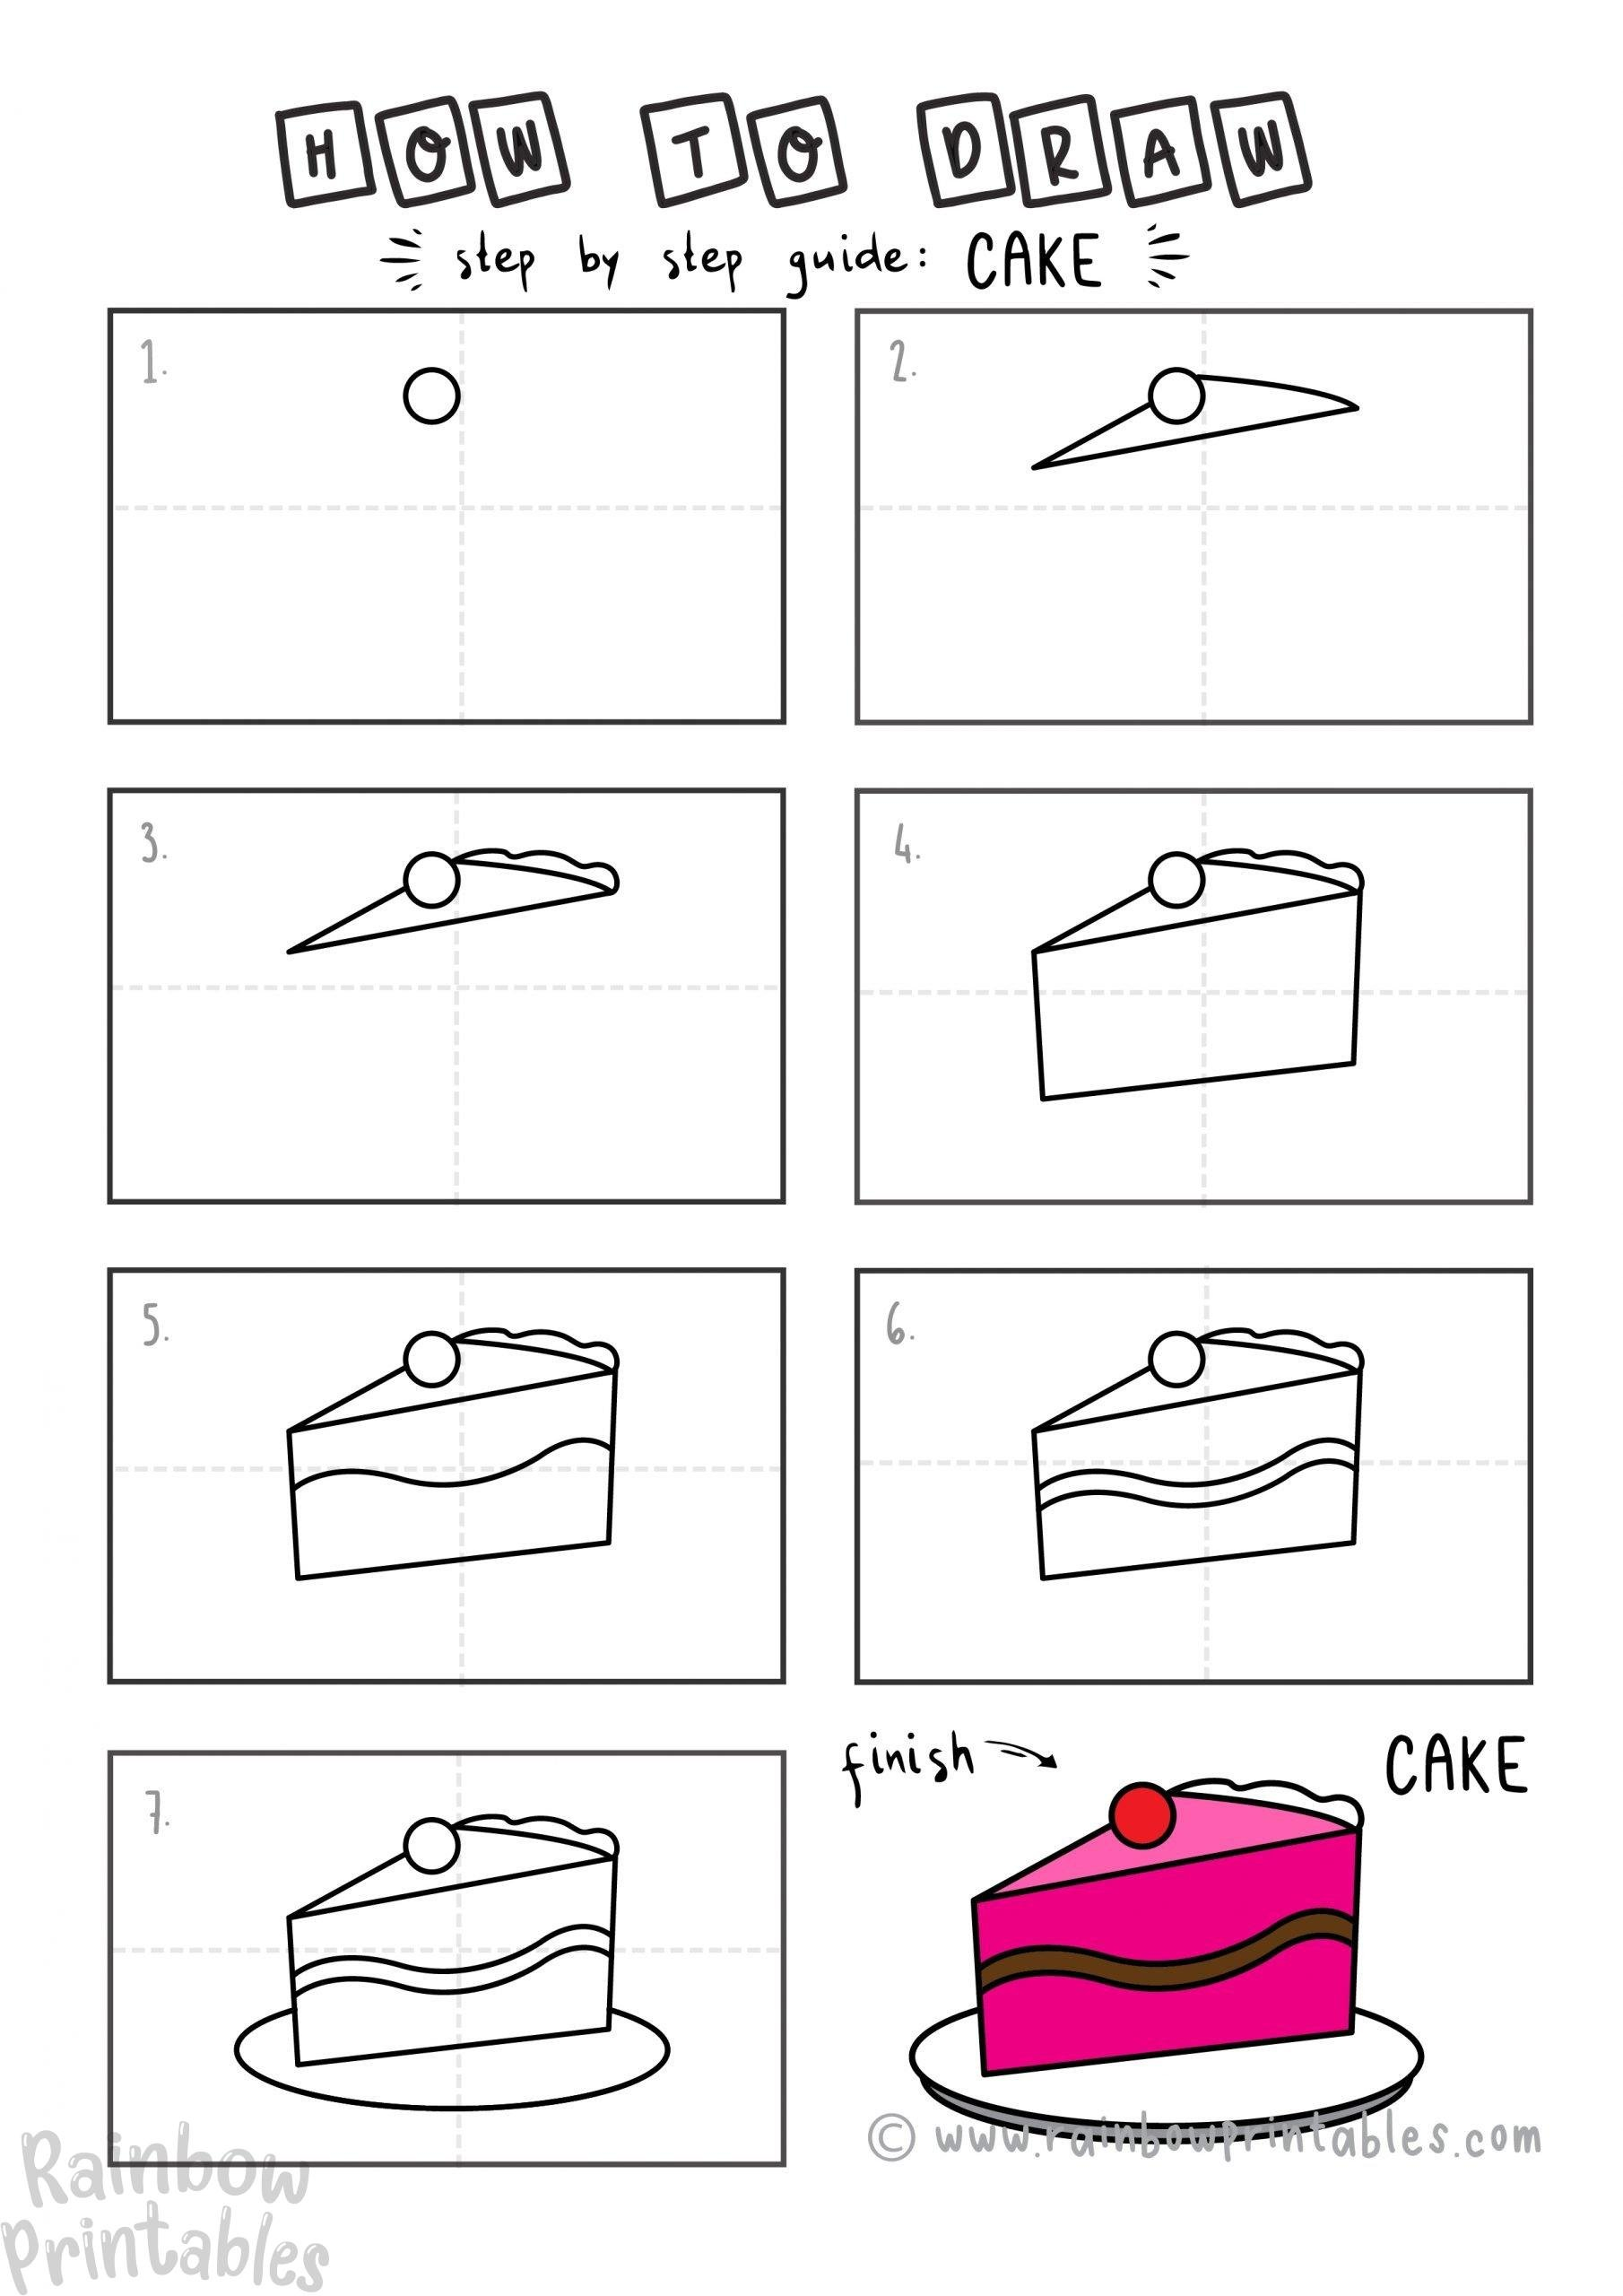 How to Draw a Slice of Cake 🍰 (8 Easy Steps Guide for Young Kids) - Rainbow Printables